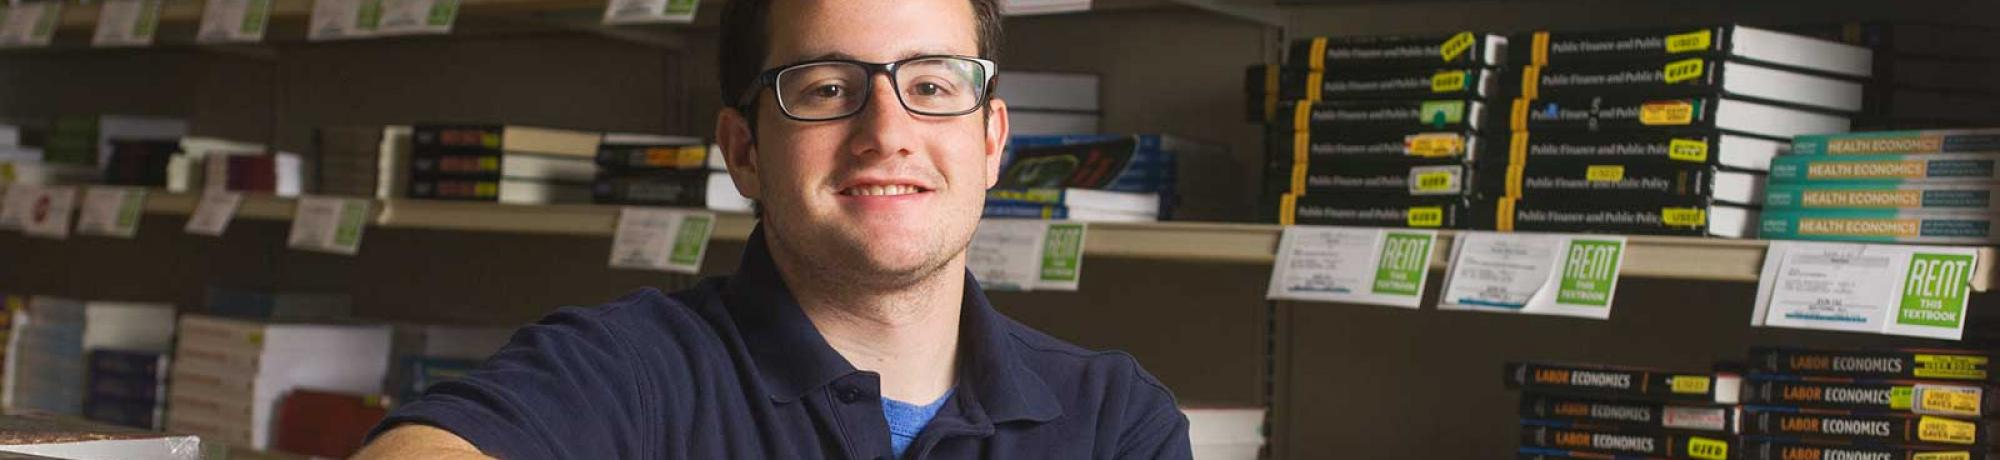 "In 2015, UC Davis senior Andrew Musca, an environmental science and management major,  was named Northern California Student Employee of the Year by a college student employee association. An employee for UC Davis Stores for three years, Musca said, ""The job taught me that business really excites me."" (Karin Higgins/UC Davis)"